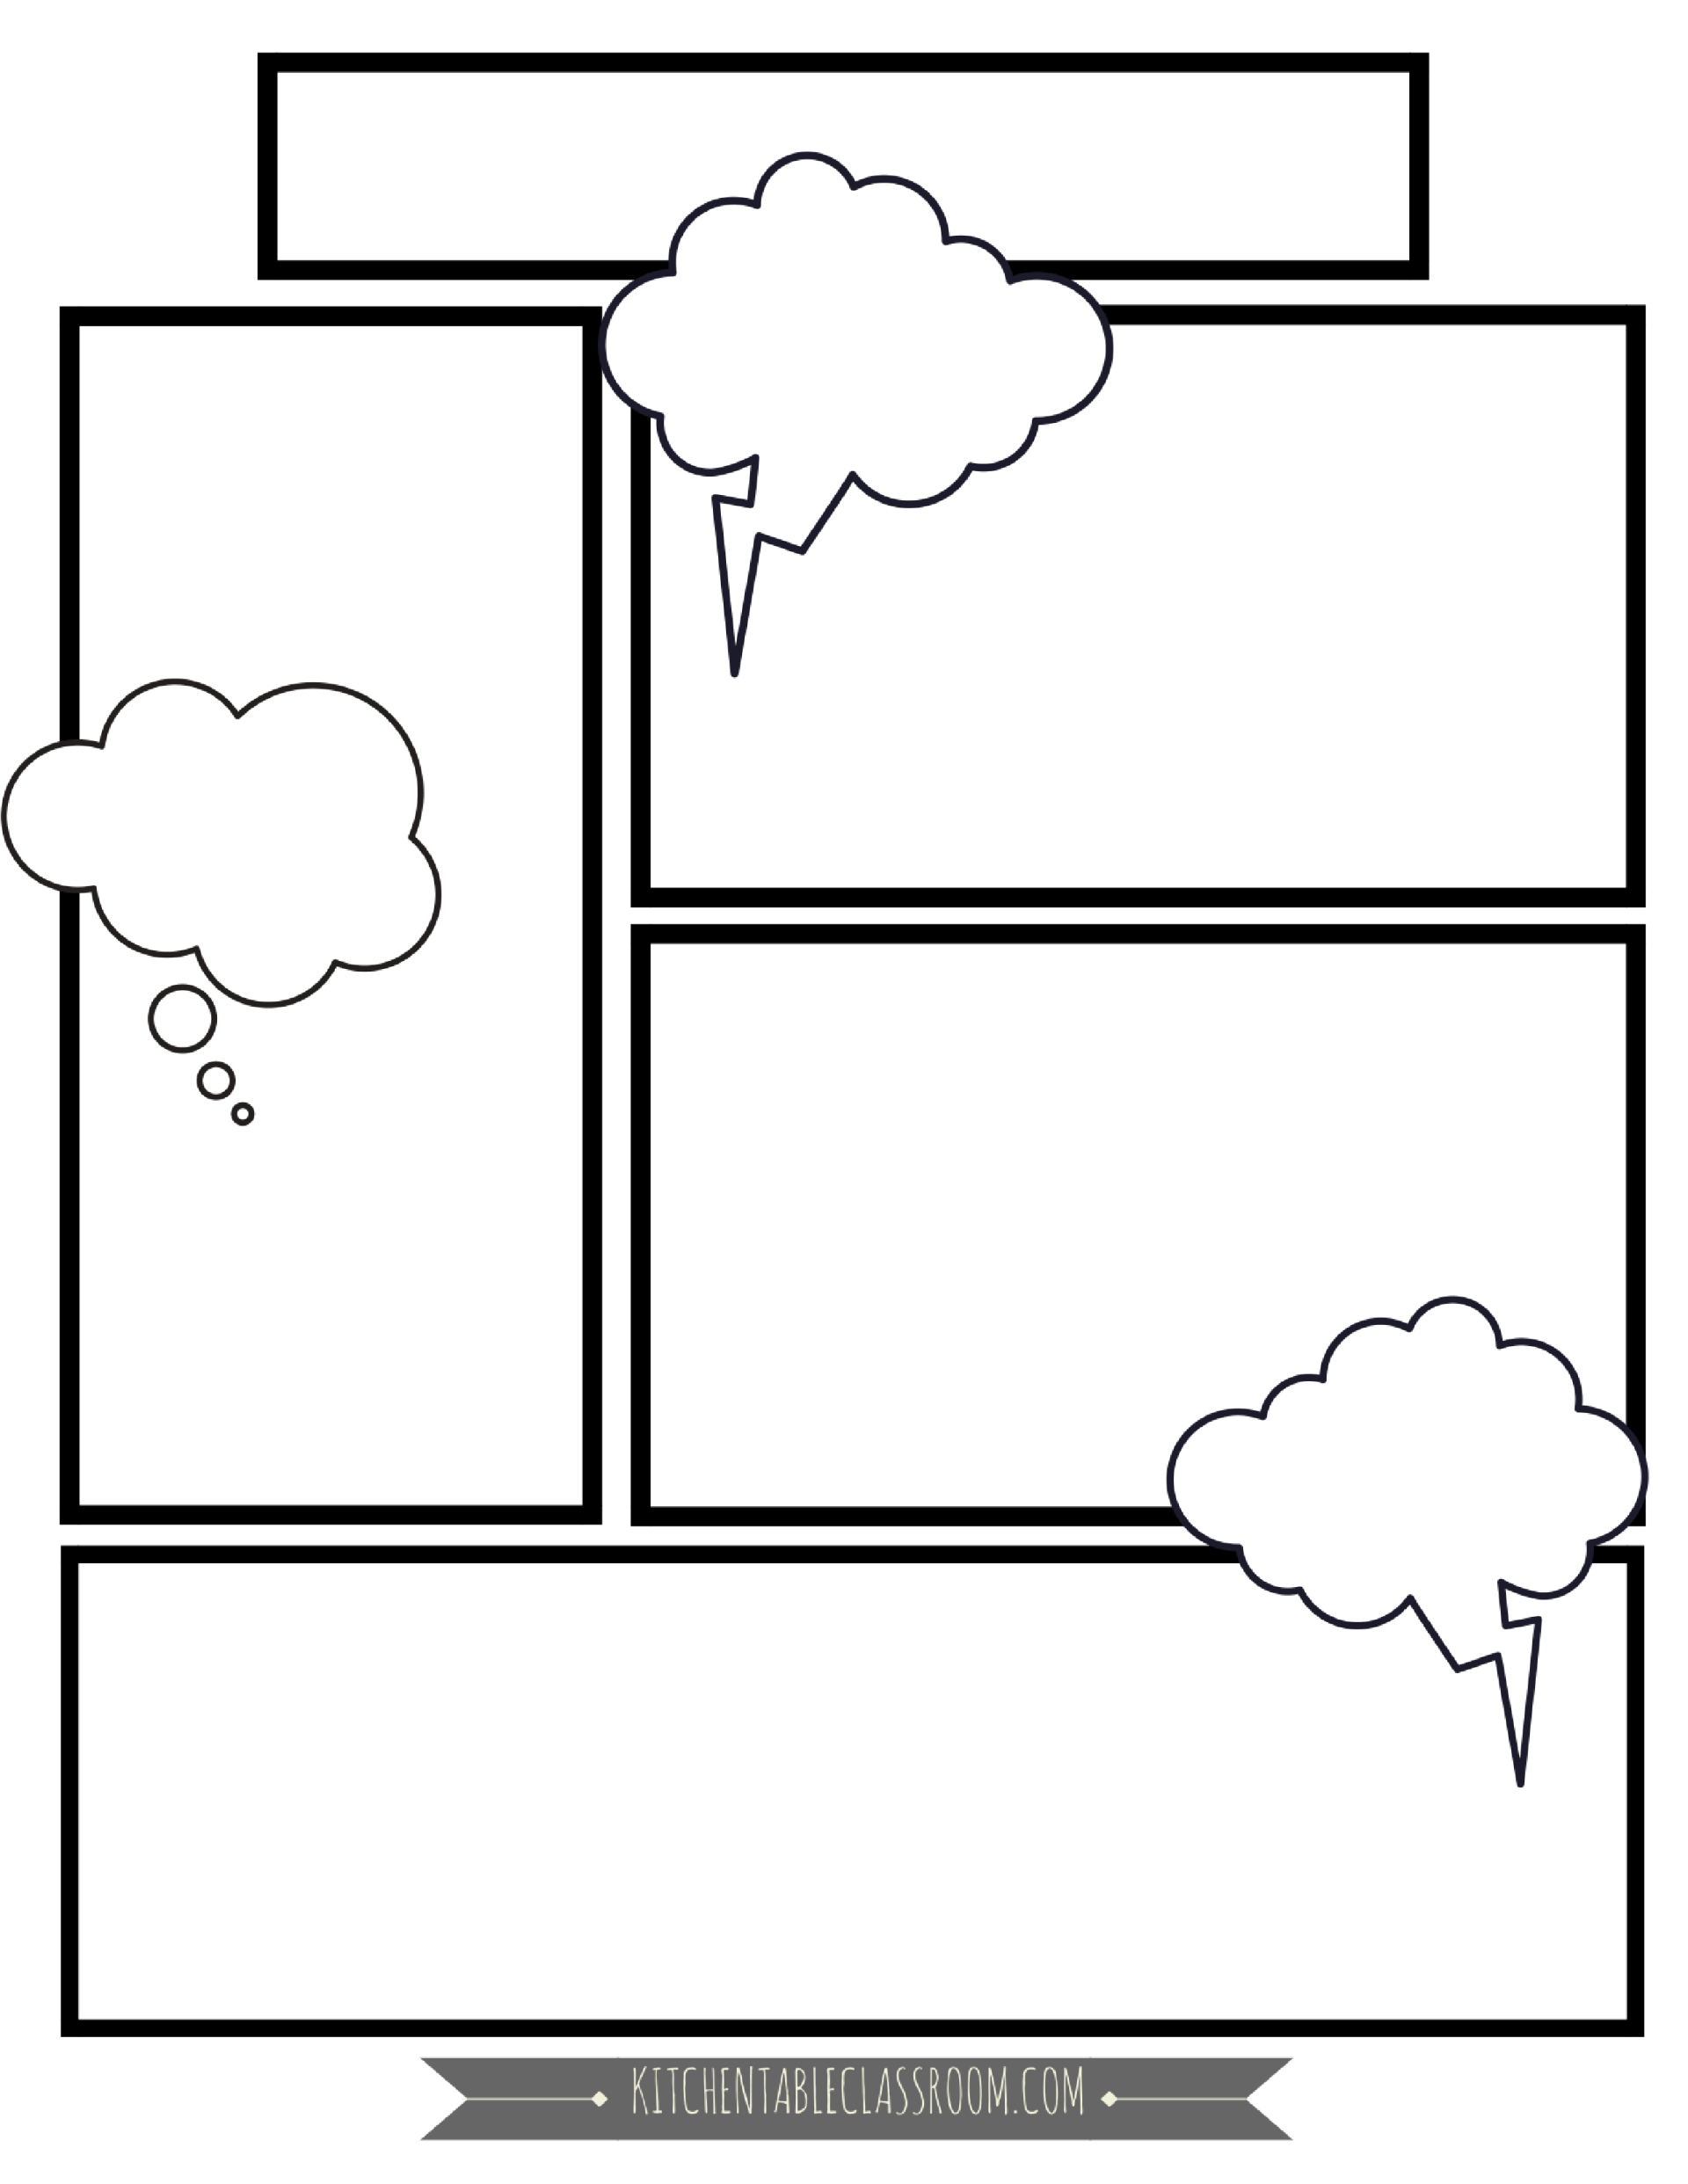 Comic Book Templates Free Printable Pages The Kitchen Table Classroom Comic Book Template Comic Template Comic Book Layout